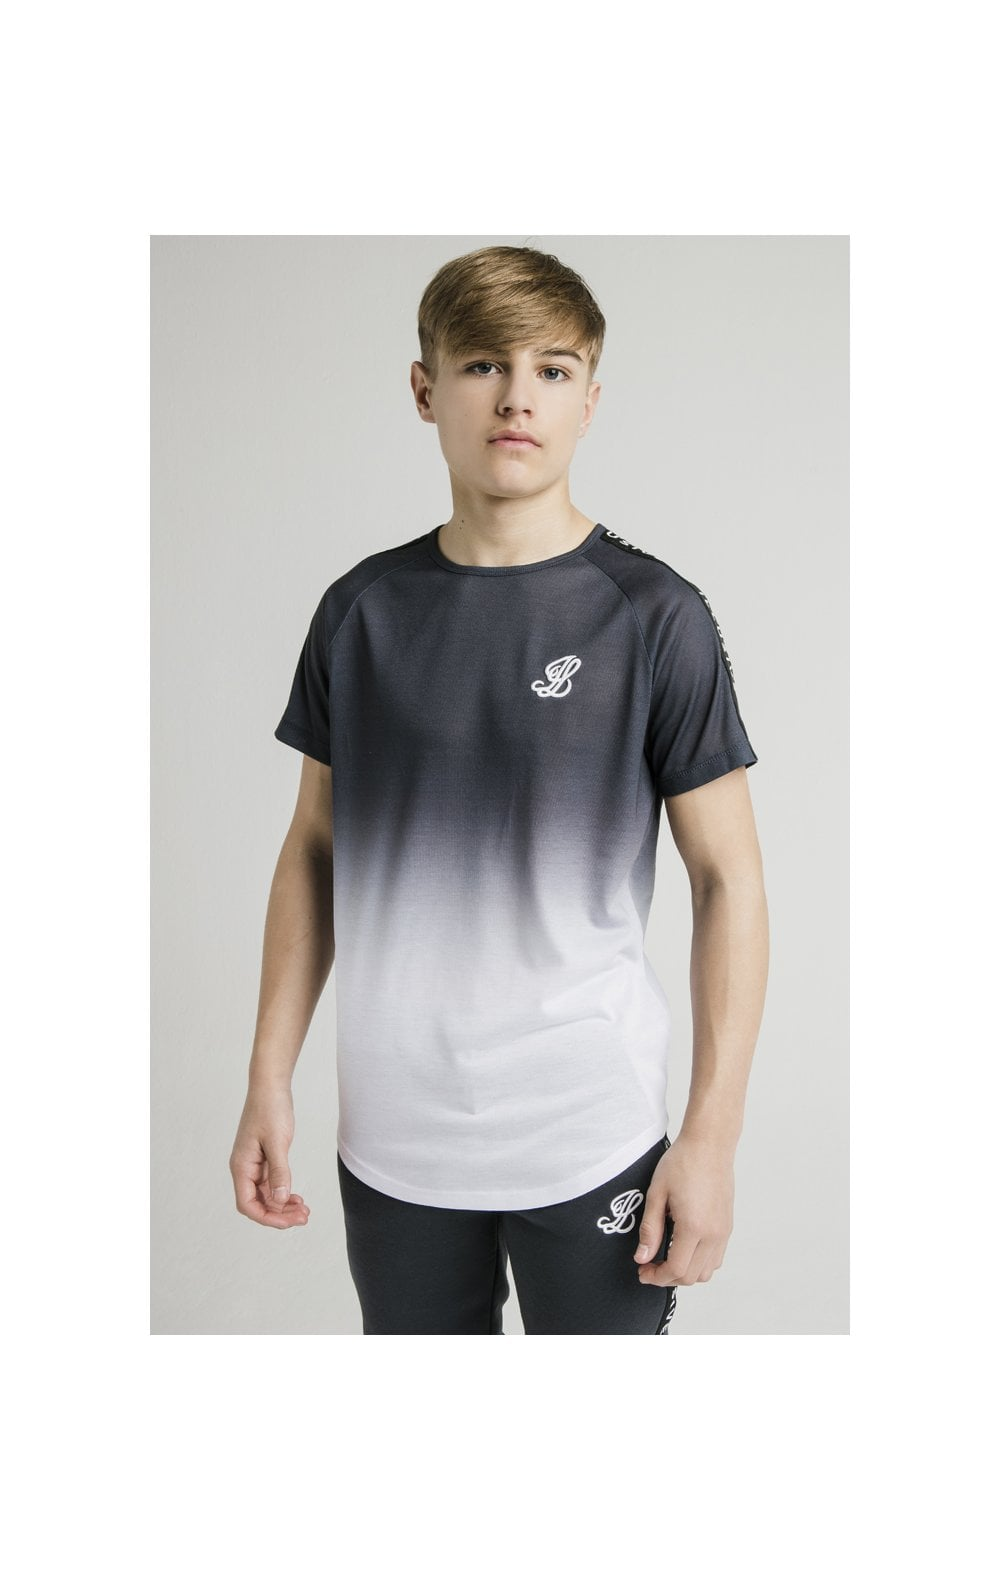 Load image into Gallery viewer, Illusive London S/S Fade Taped Tee - Grey & White (2)